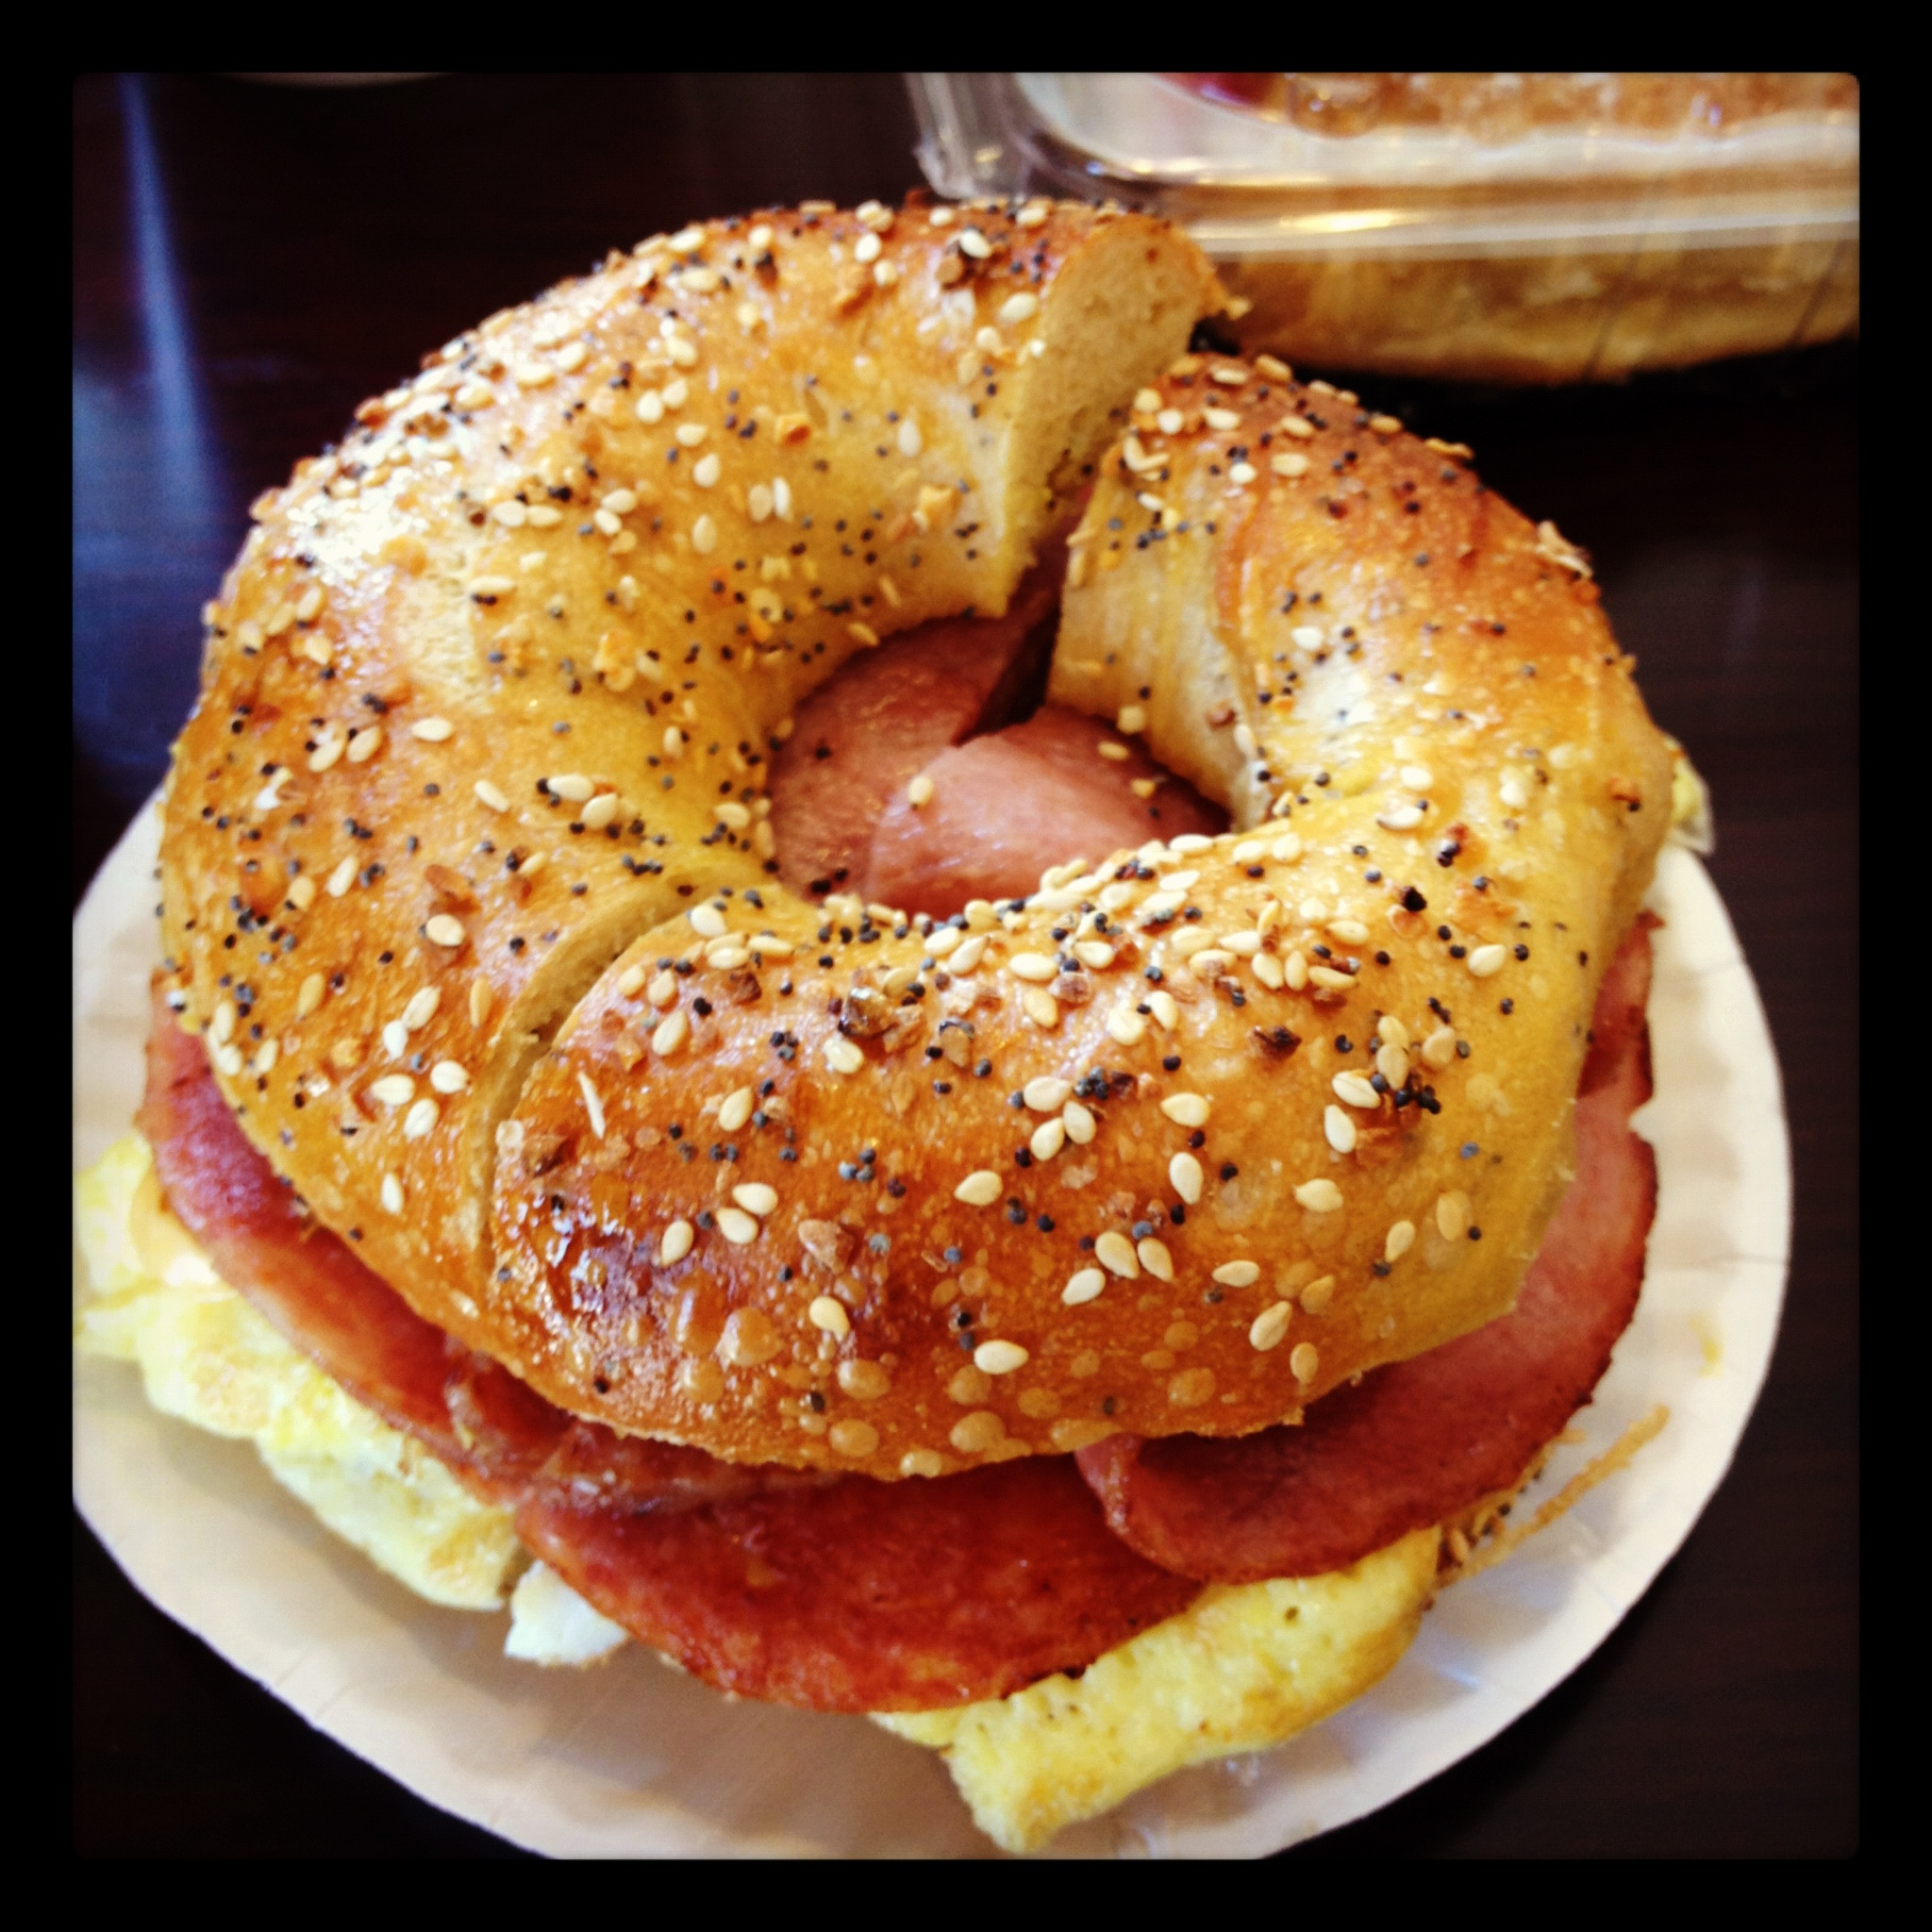 Egg Everything Bagel with Scrambled Egg, Taylor Ham, and Cheese